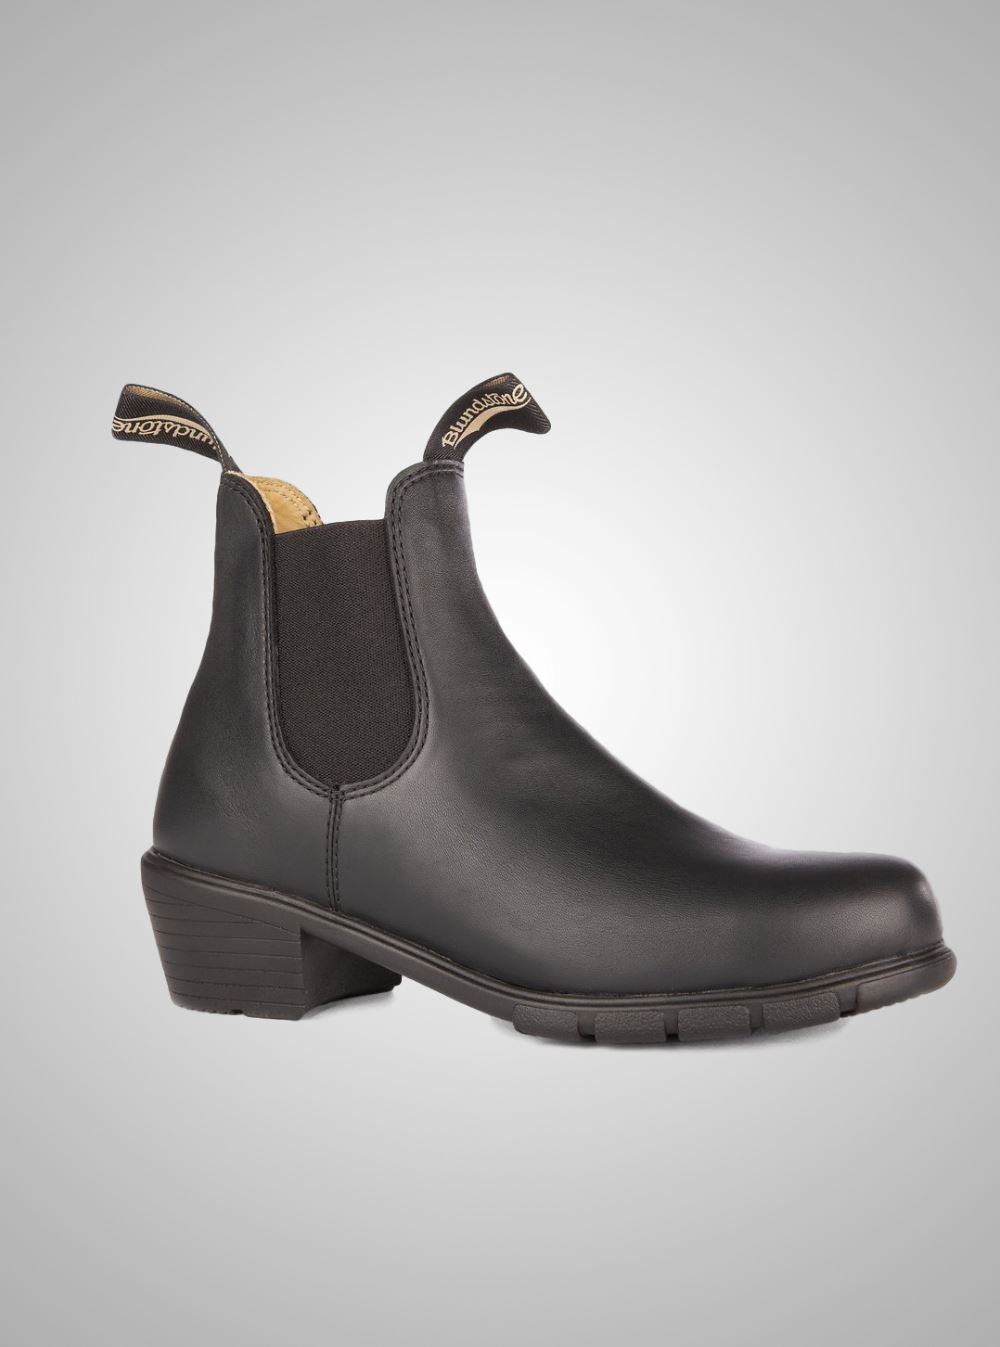 Blundstone 1671 - The Women's Series in Black